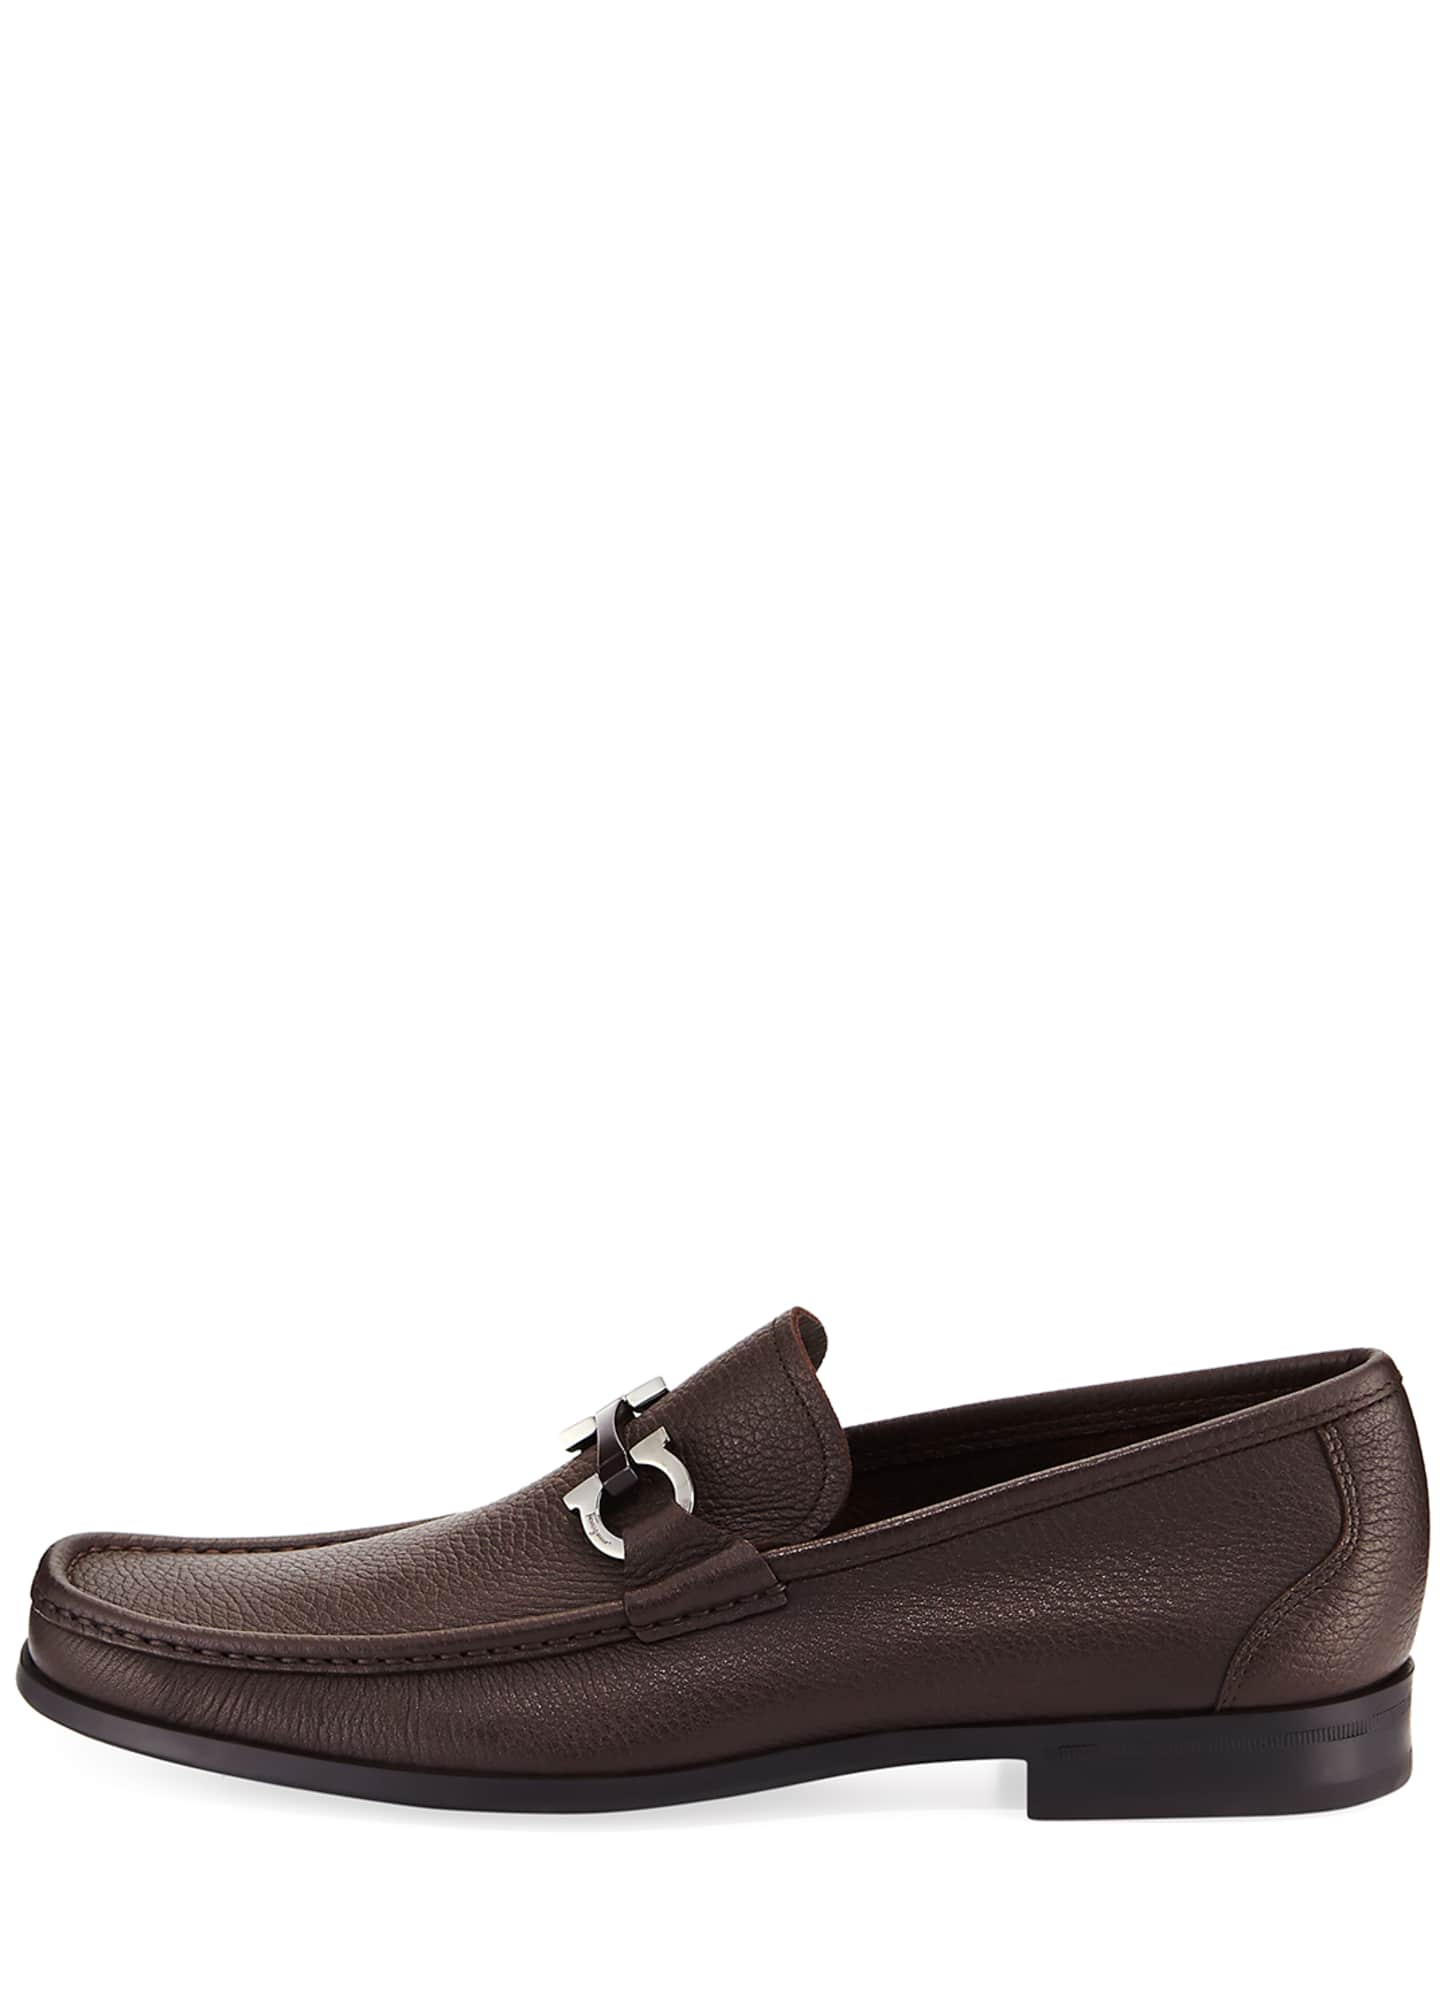 Image 3 of 5: Men's Textured Calfskin Gancini Loafer